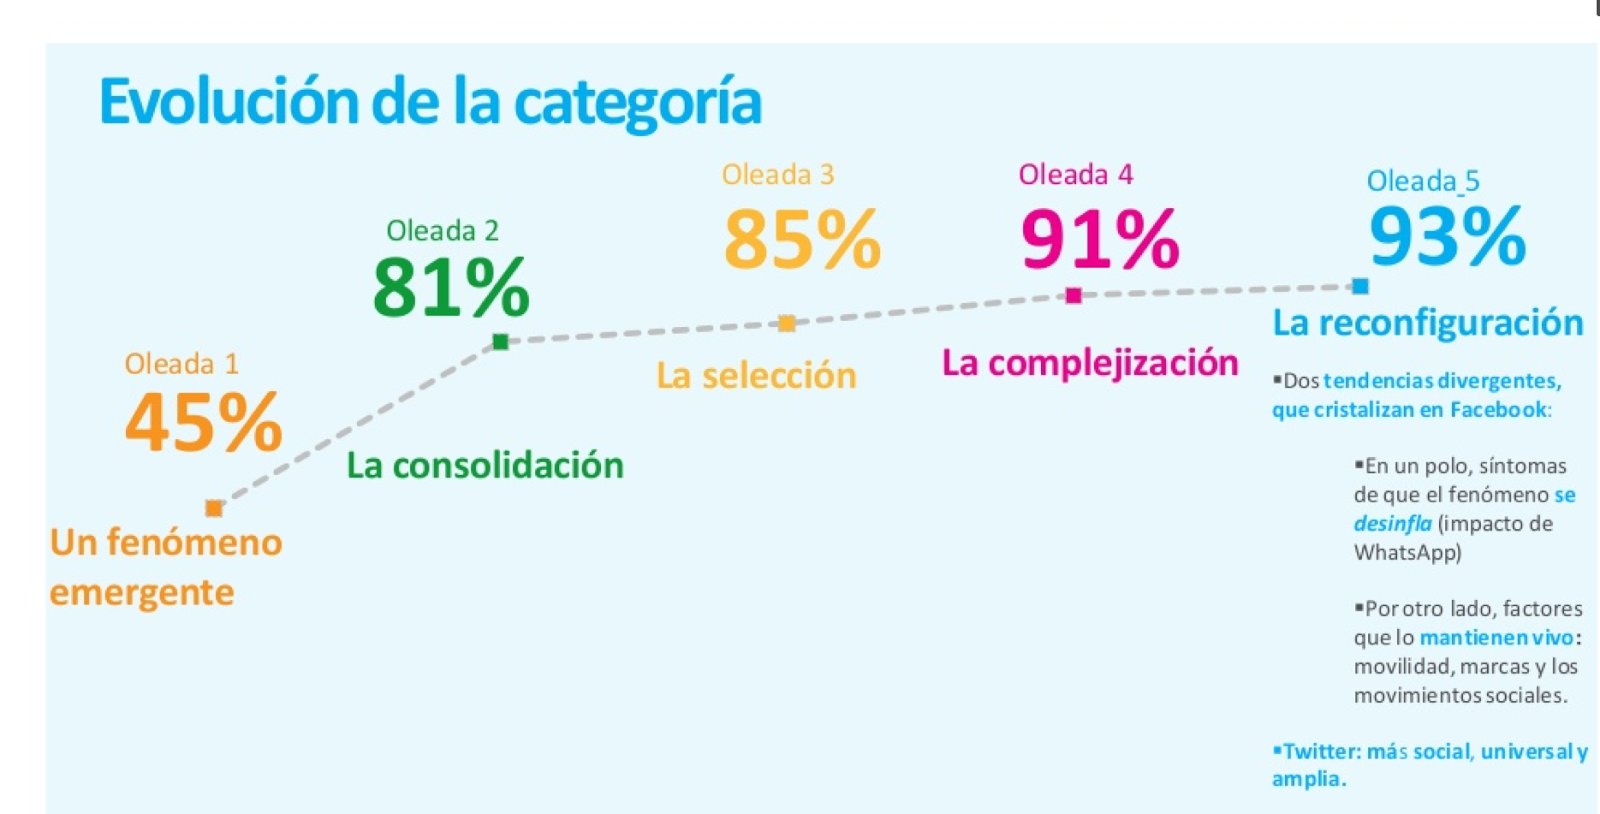 Oleada observatorio redes sociales Zenith y The Cocktail Analysis